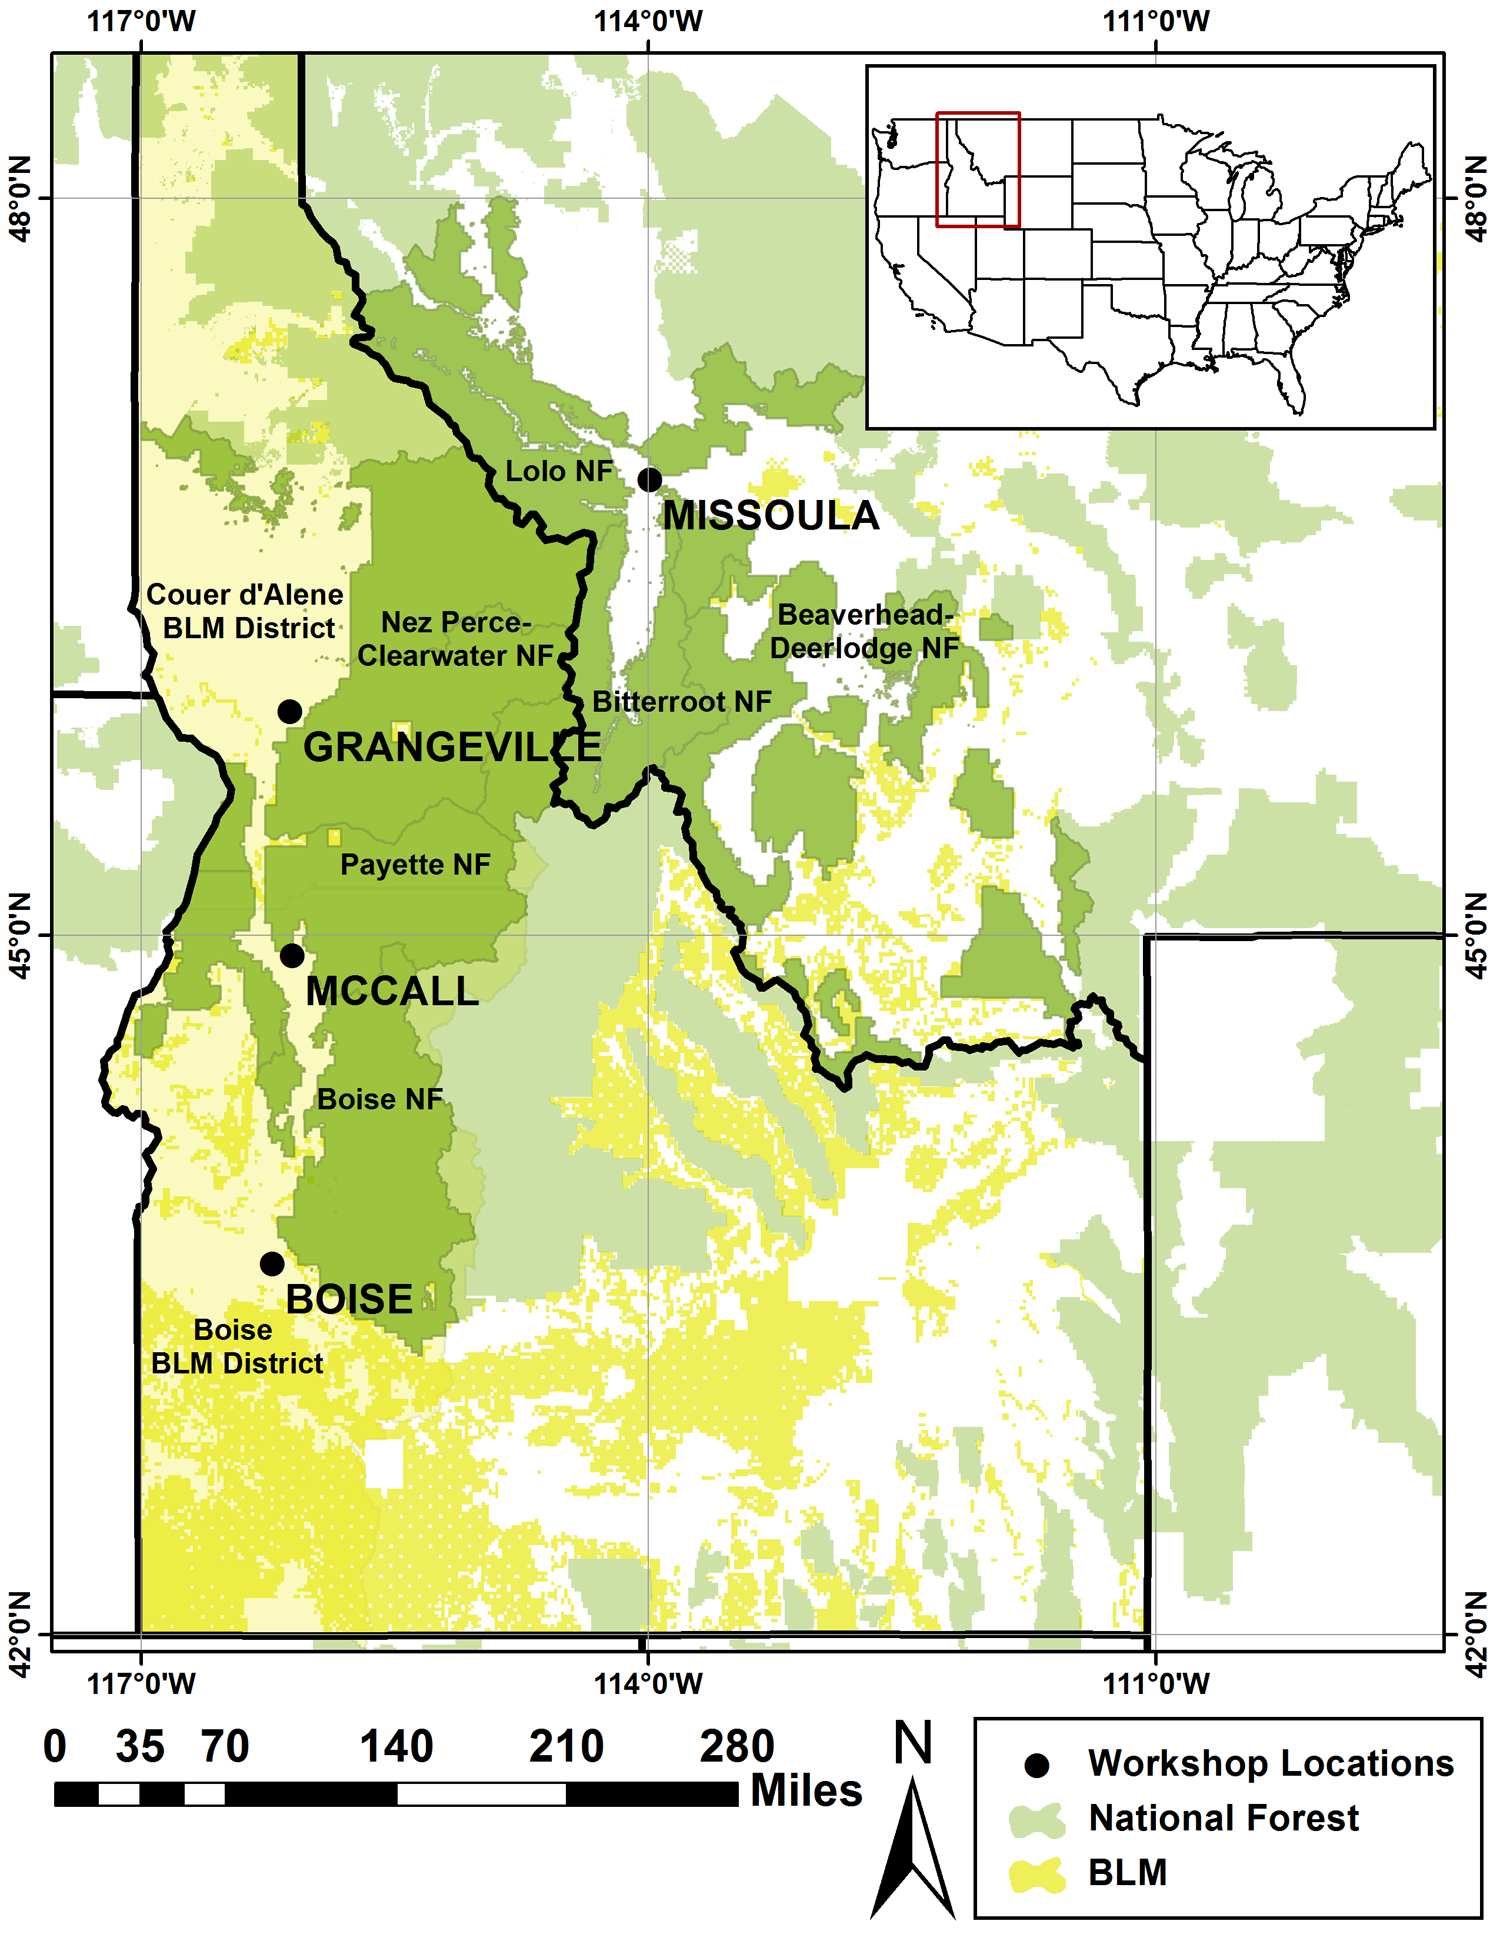 Fig 1 Map Of The Study Area Highlighting The National Forests